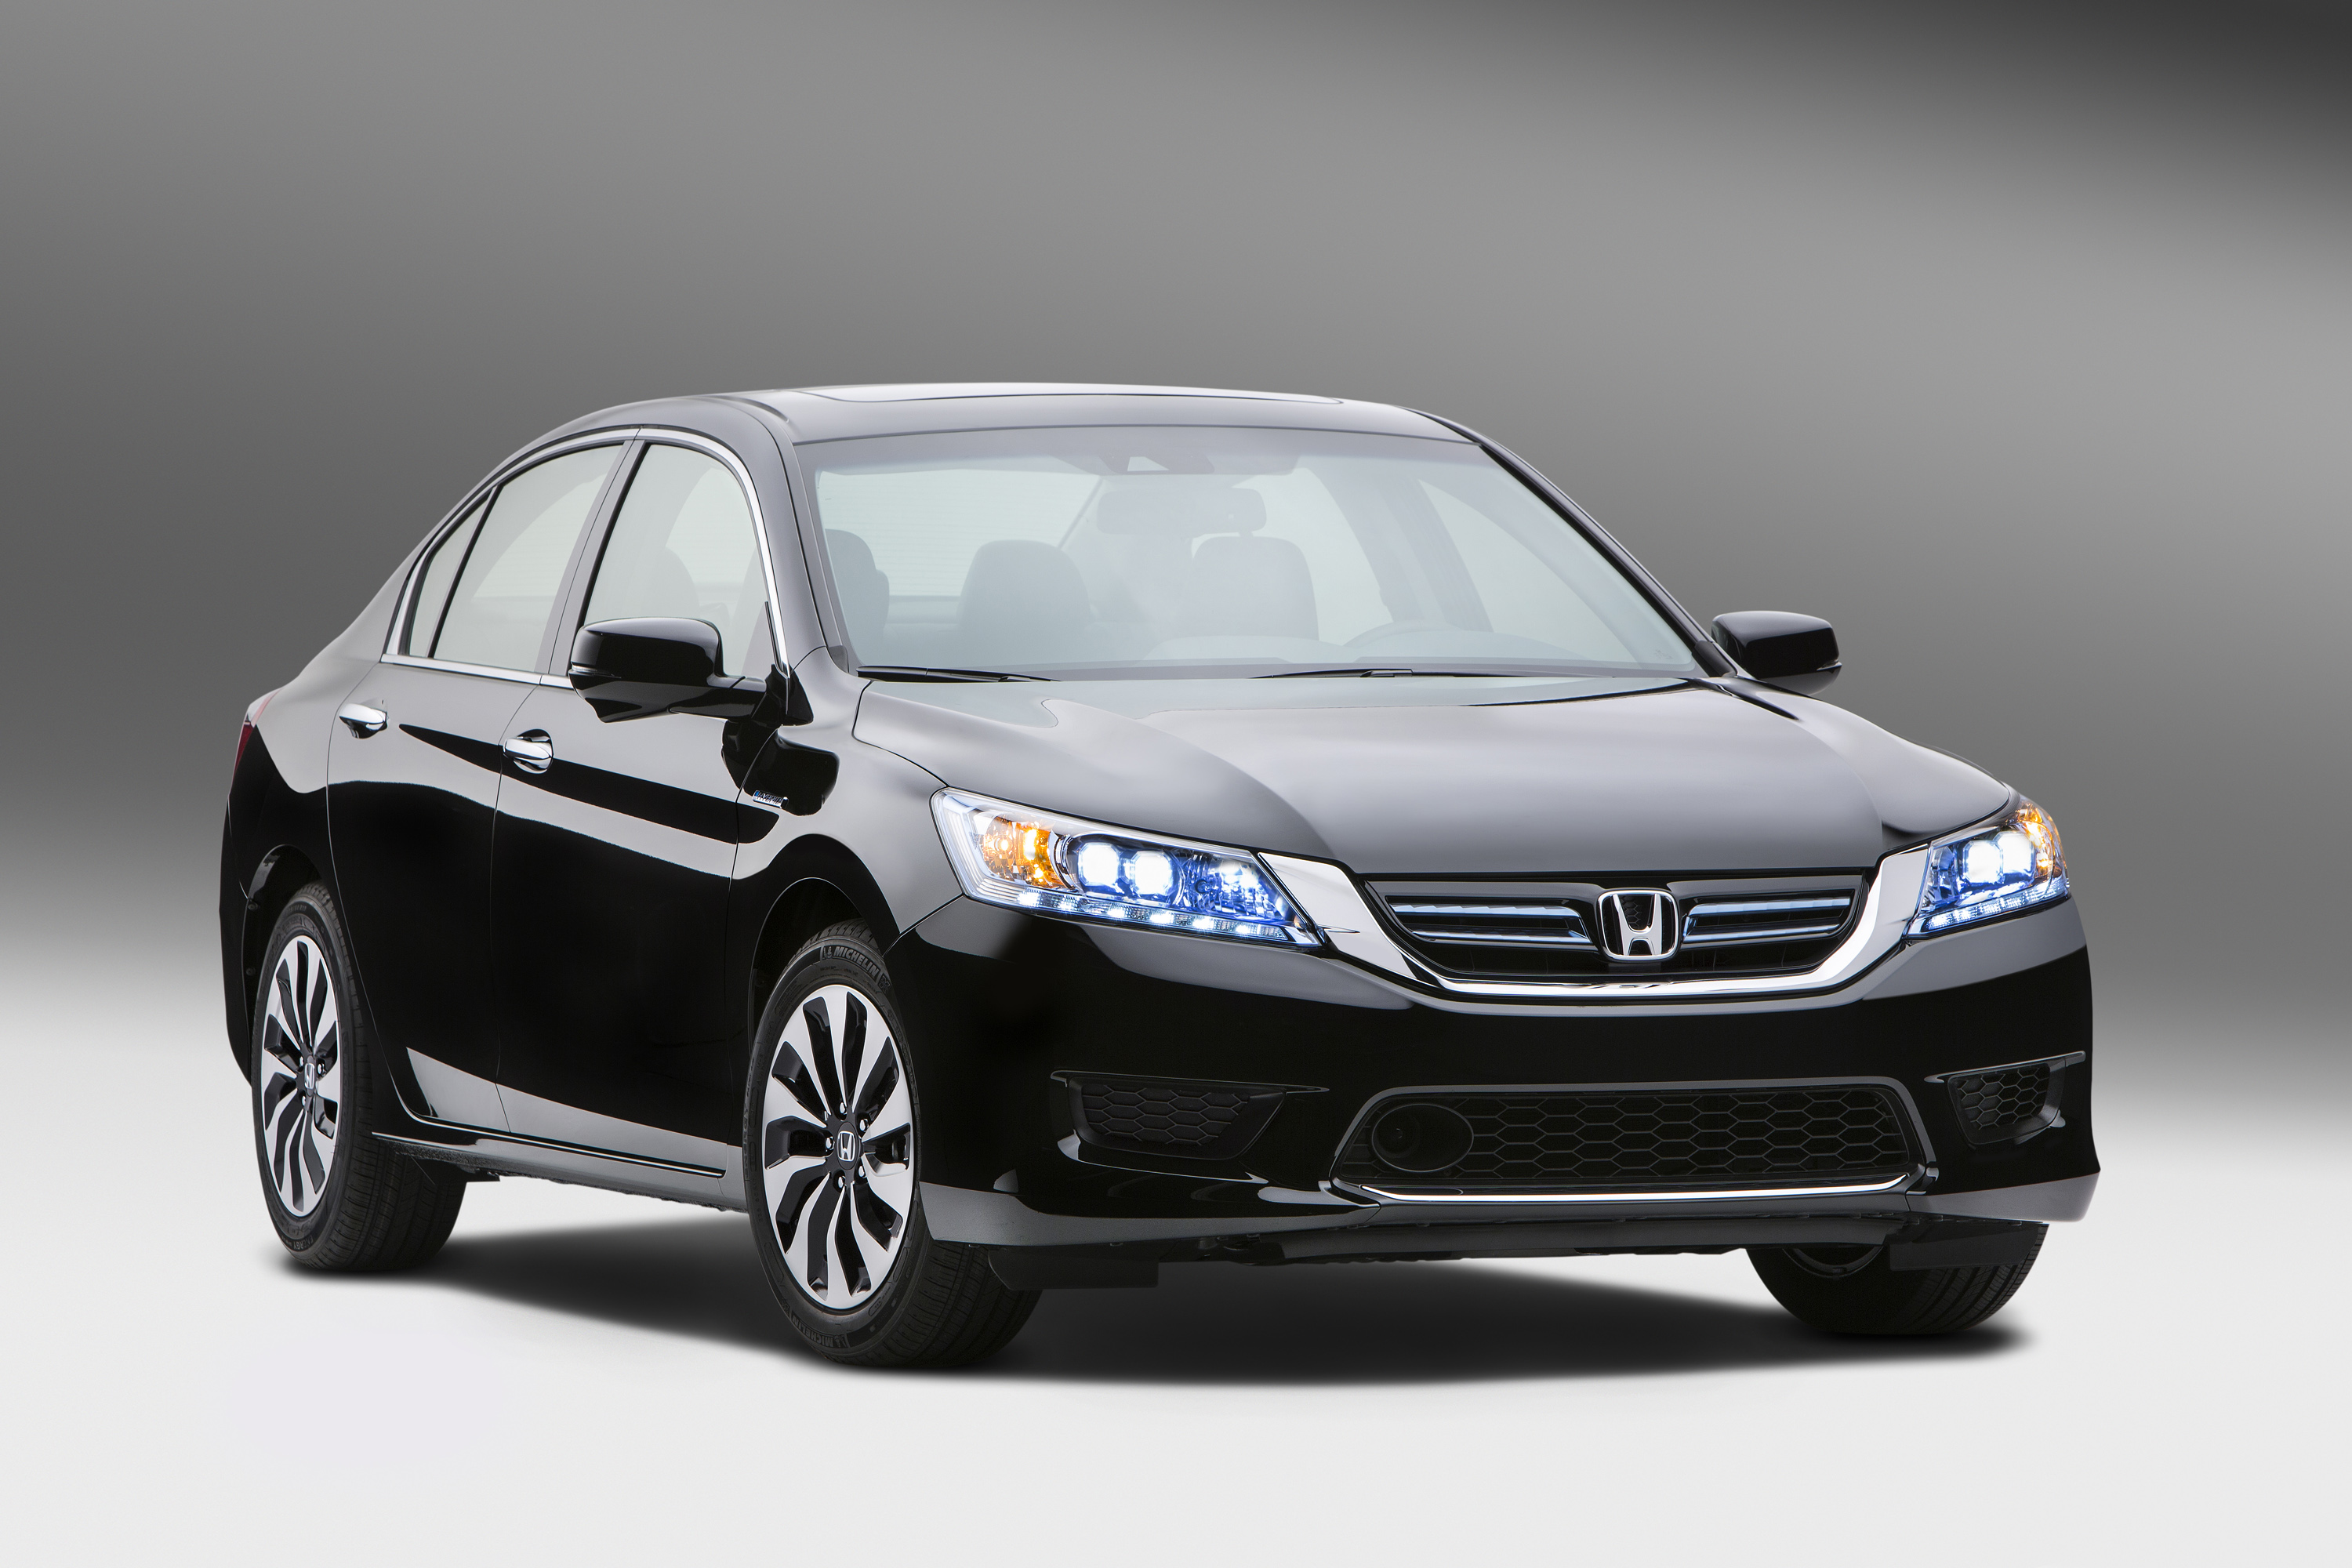 certified hondas find search your cuv vehicle pre owned honda cars used img canada hero